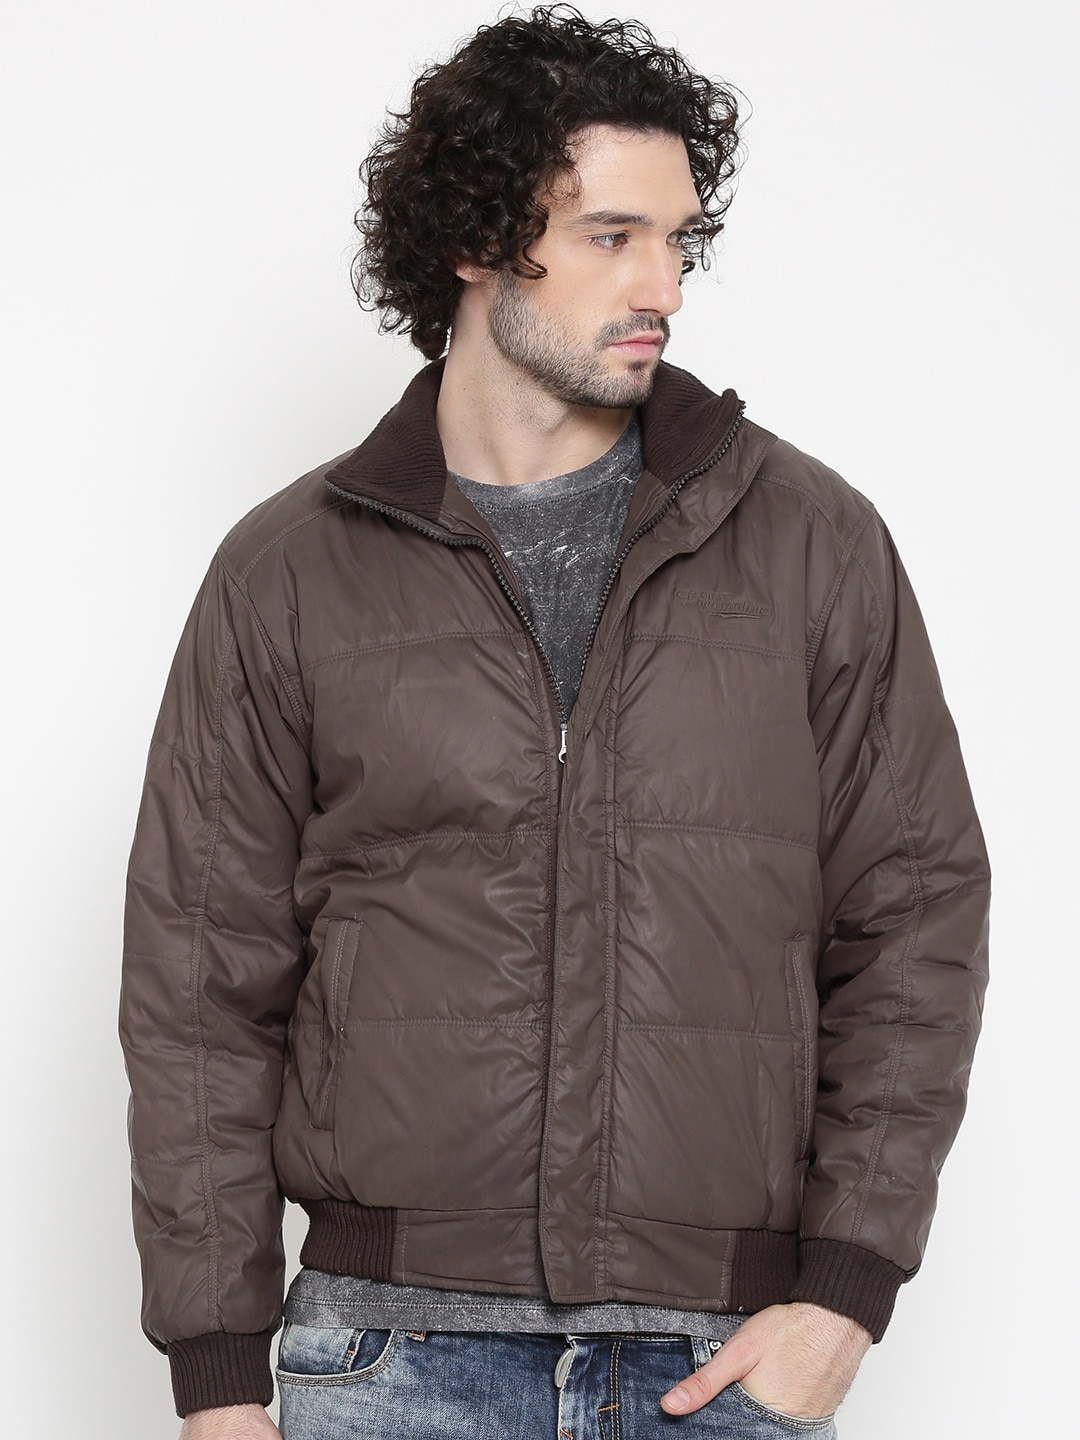 Buy Locomotive Brown Padded Jacket - Jackets for Men | Myntra